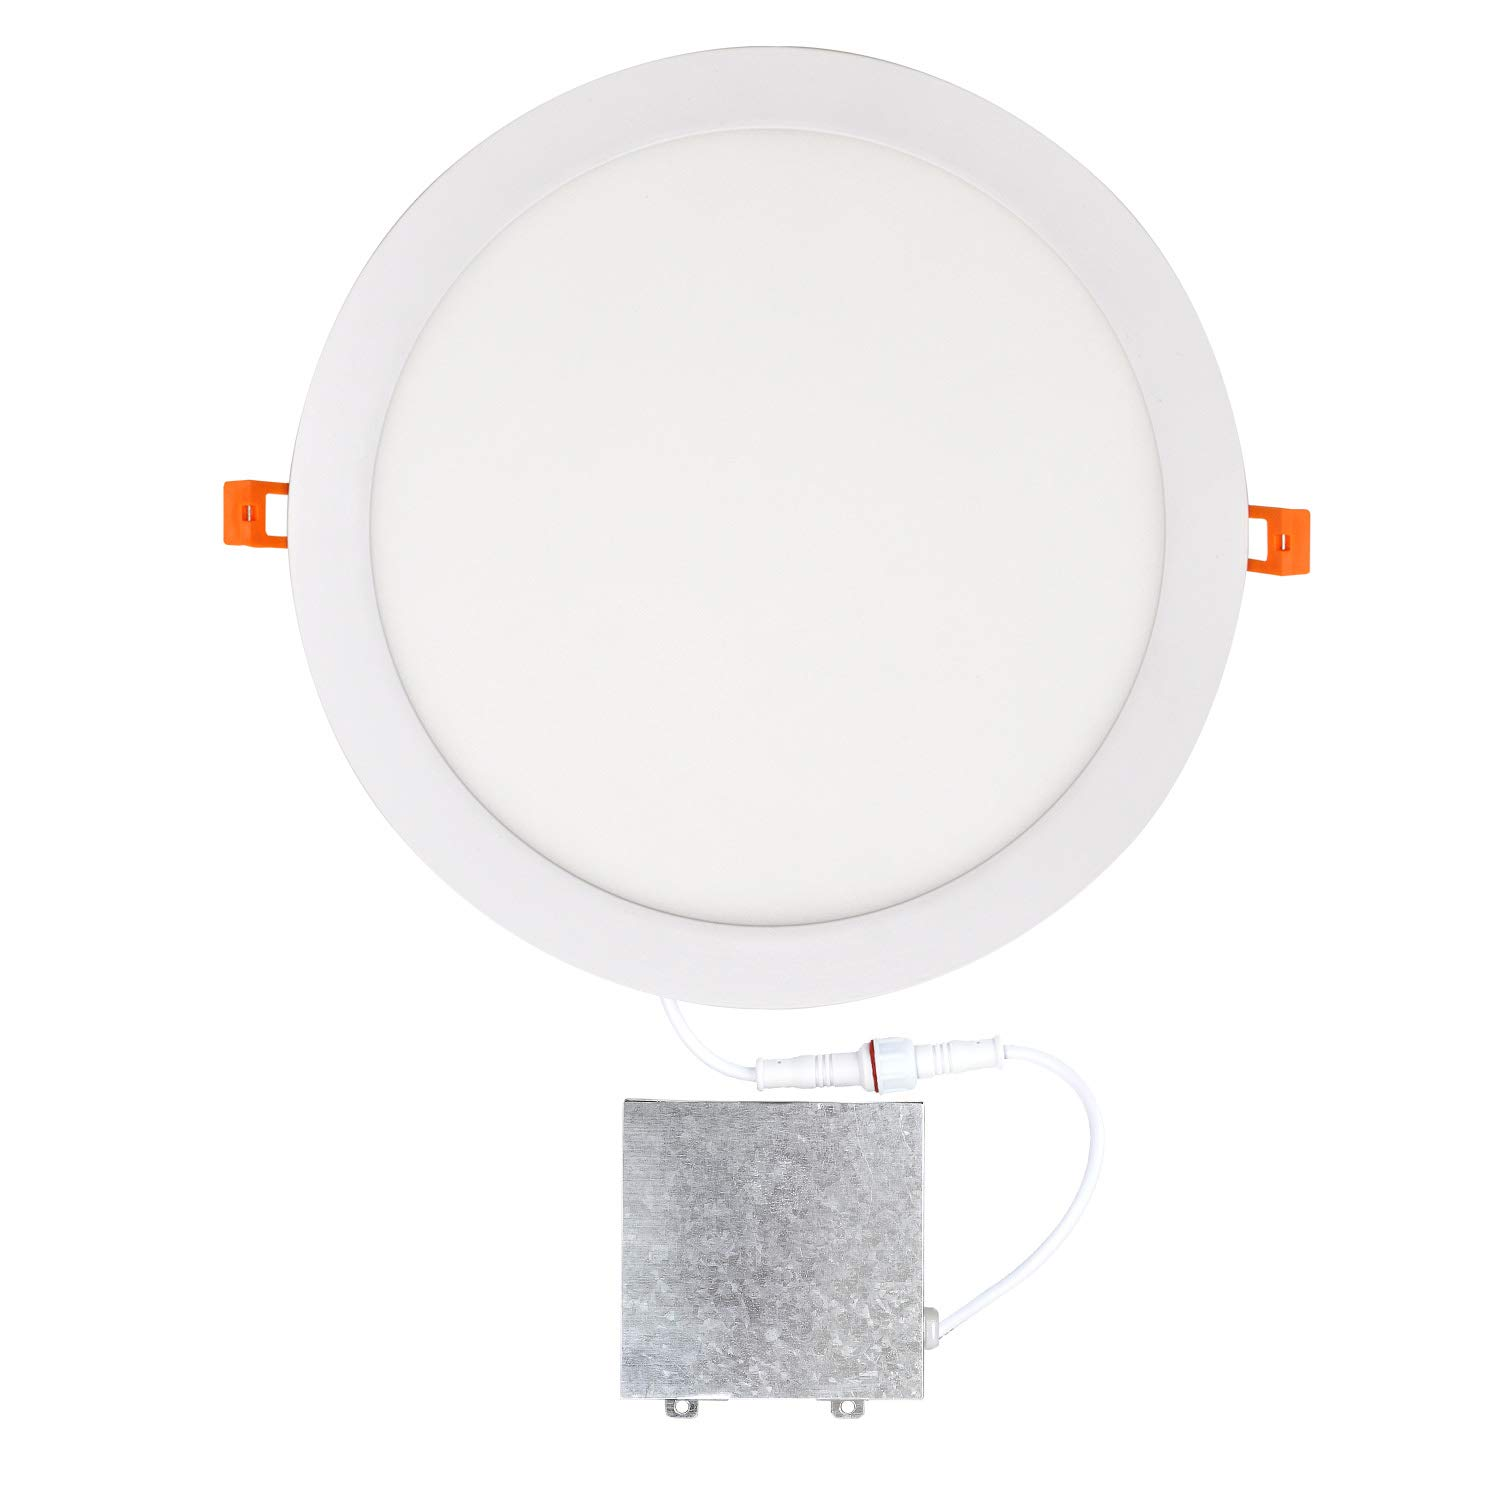 OSTWIN 12 inch 24W (120 Watt Repl.) IC Rated LED Recessed Low Profile Slim Round Panel Light with Junction Box, Dimmable, 4000K Bright Light 1800 Lm. No Can Needed ETL & Energy Star Listed